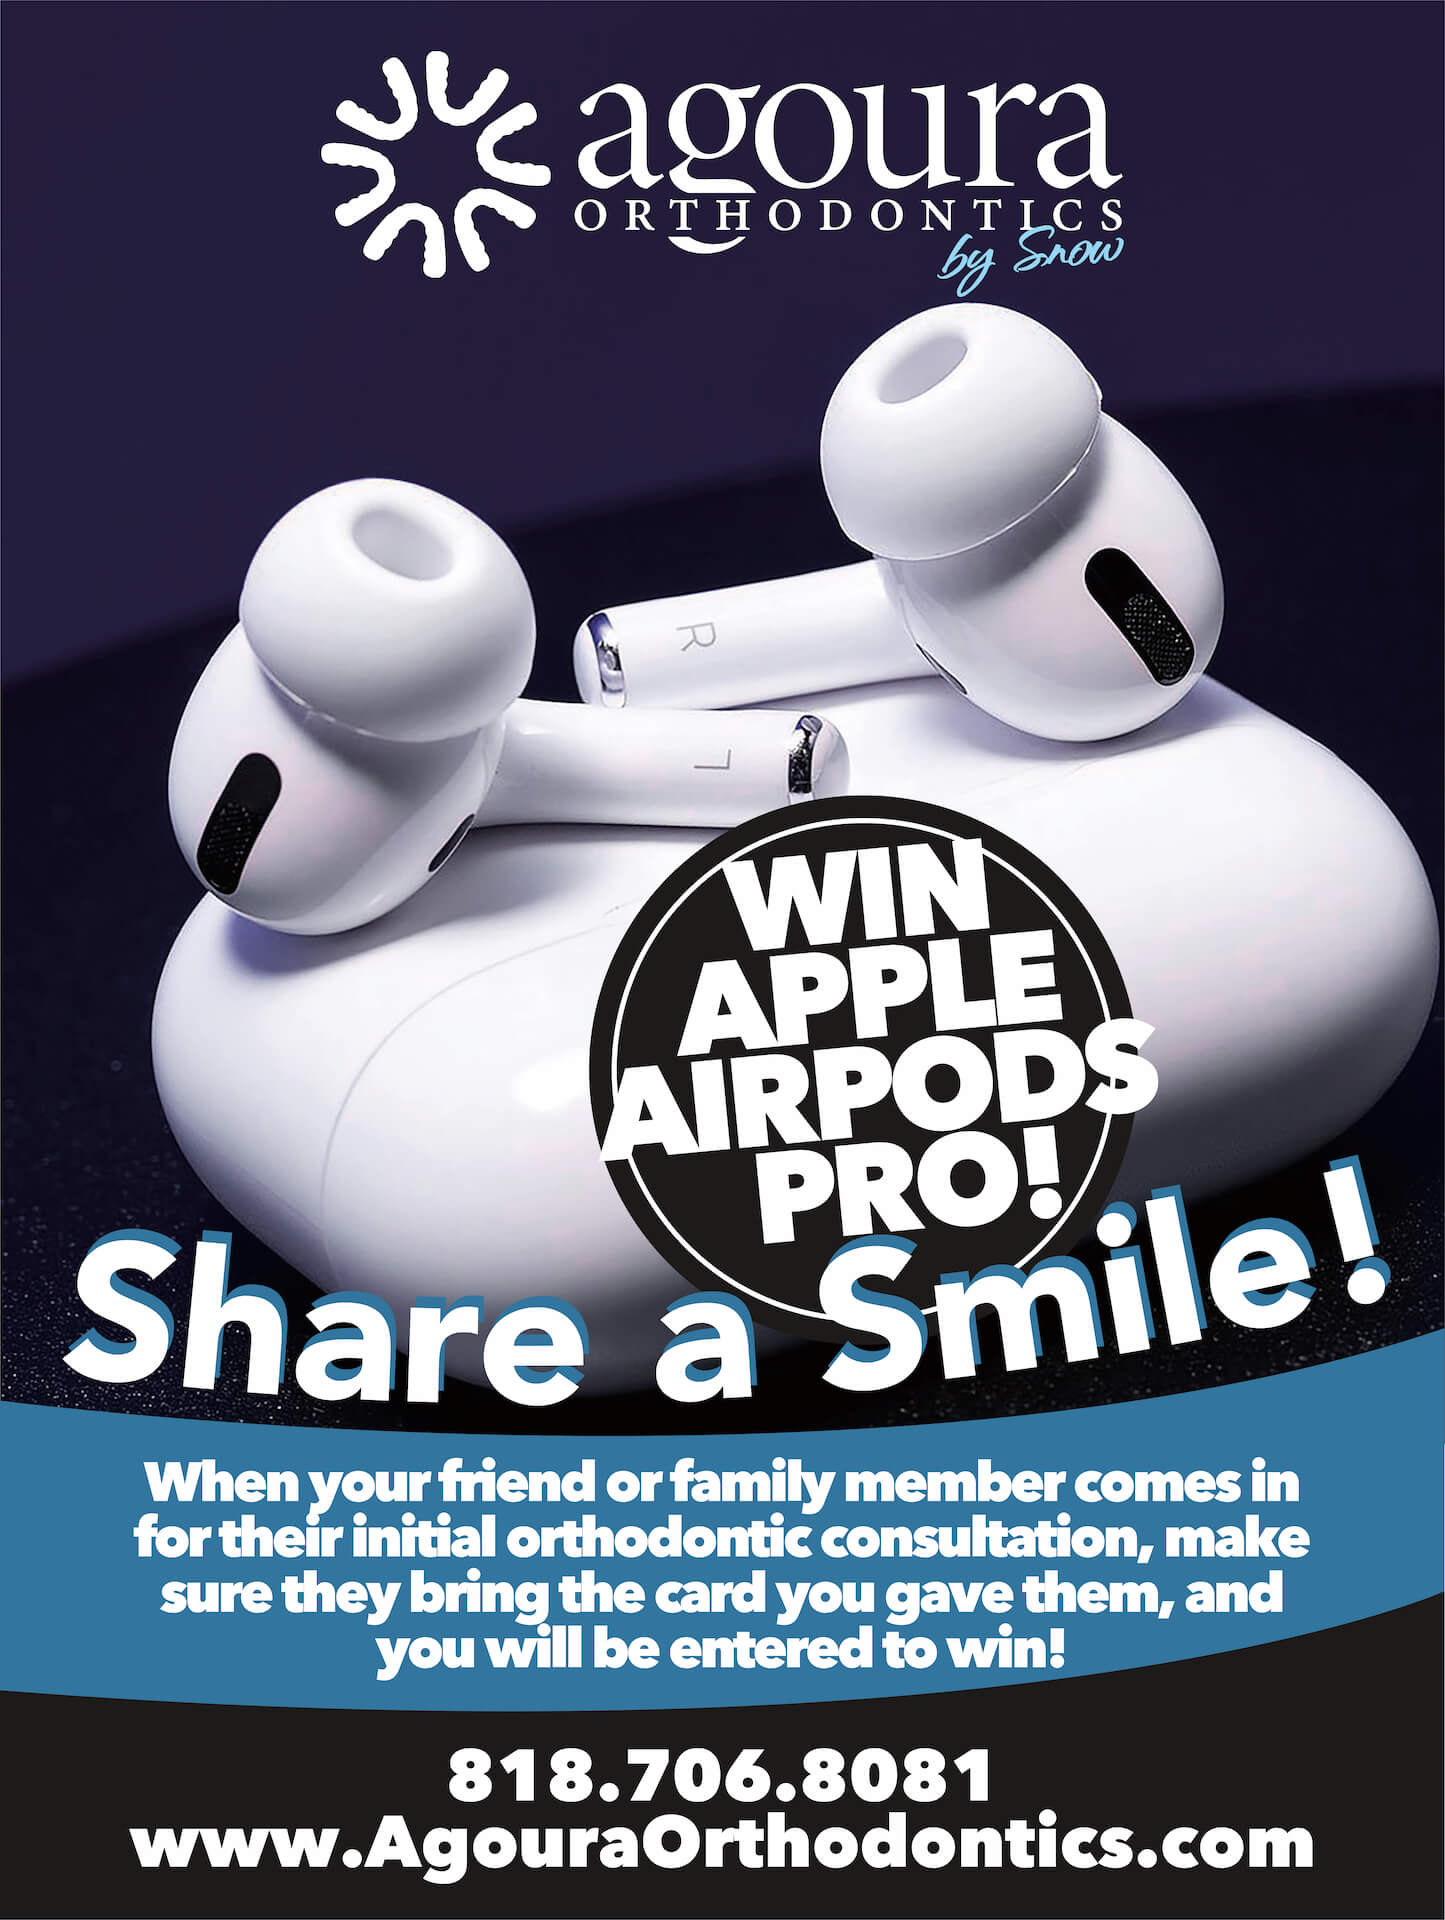 Share a smile flyer